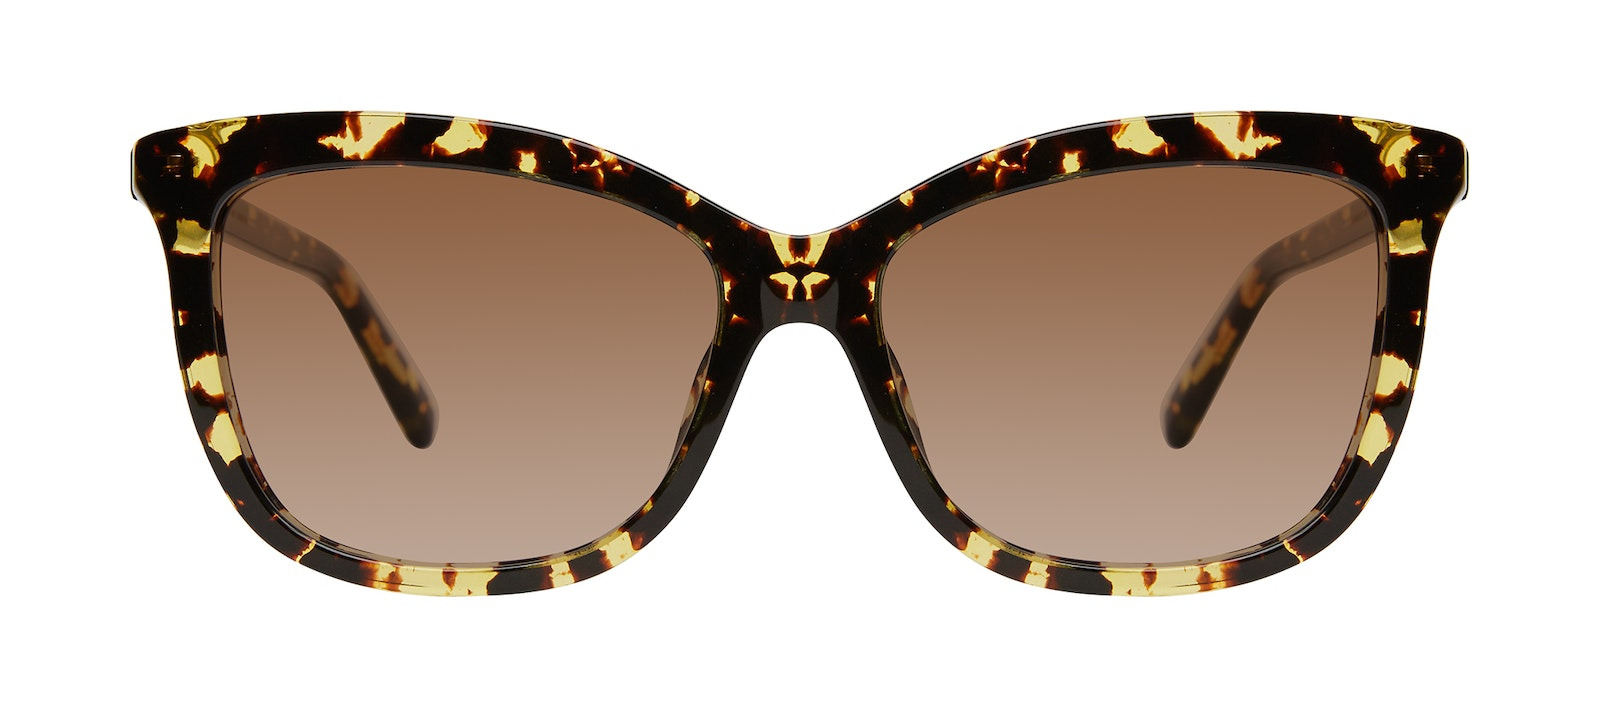 Affordable Fashion Glasses Cat Eye Sunglasses Women Paparazzi Gold Flake Front